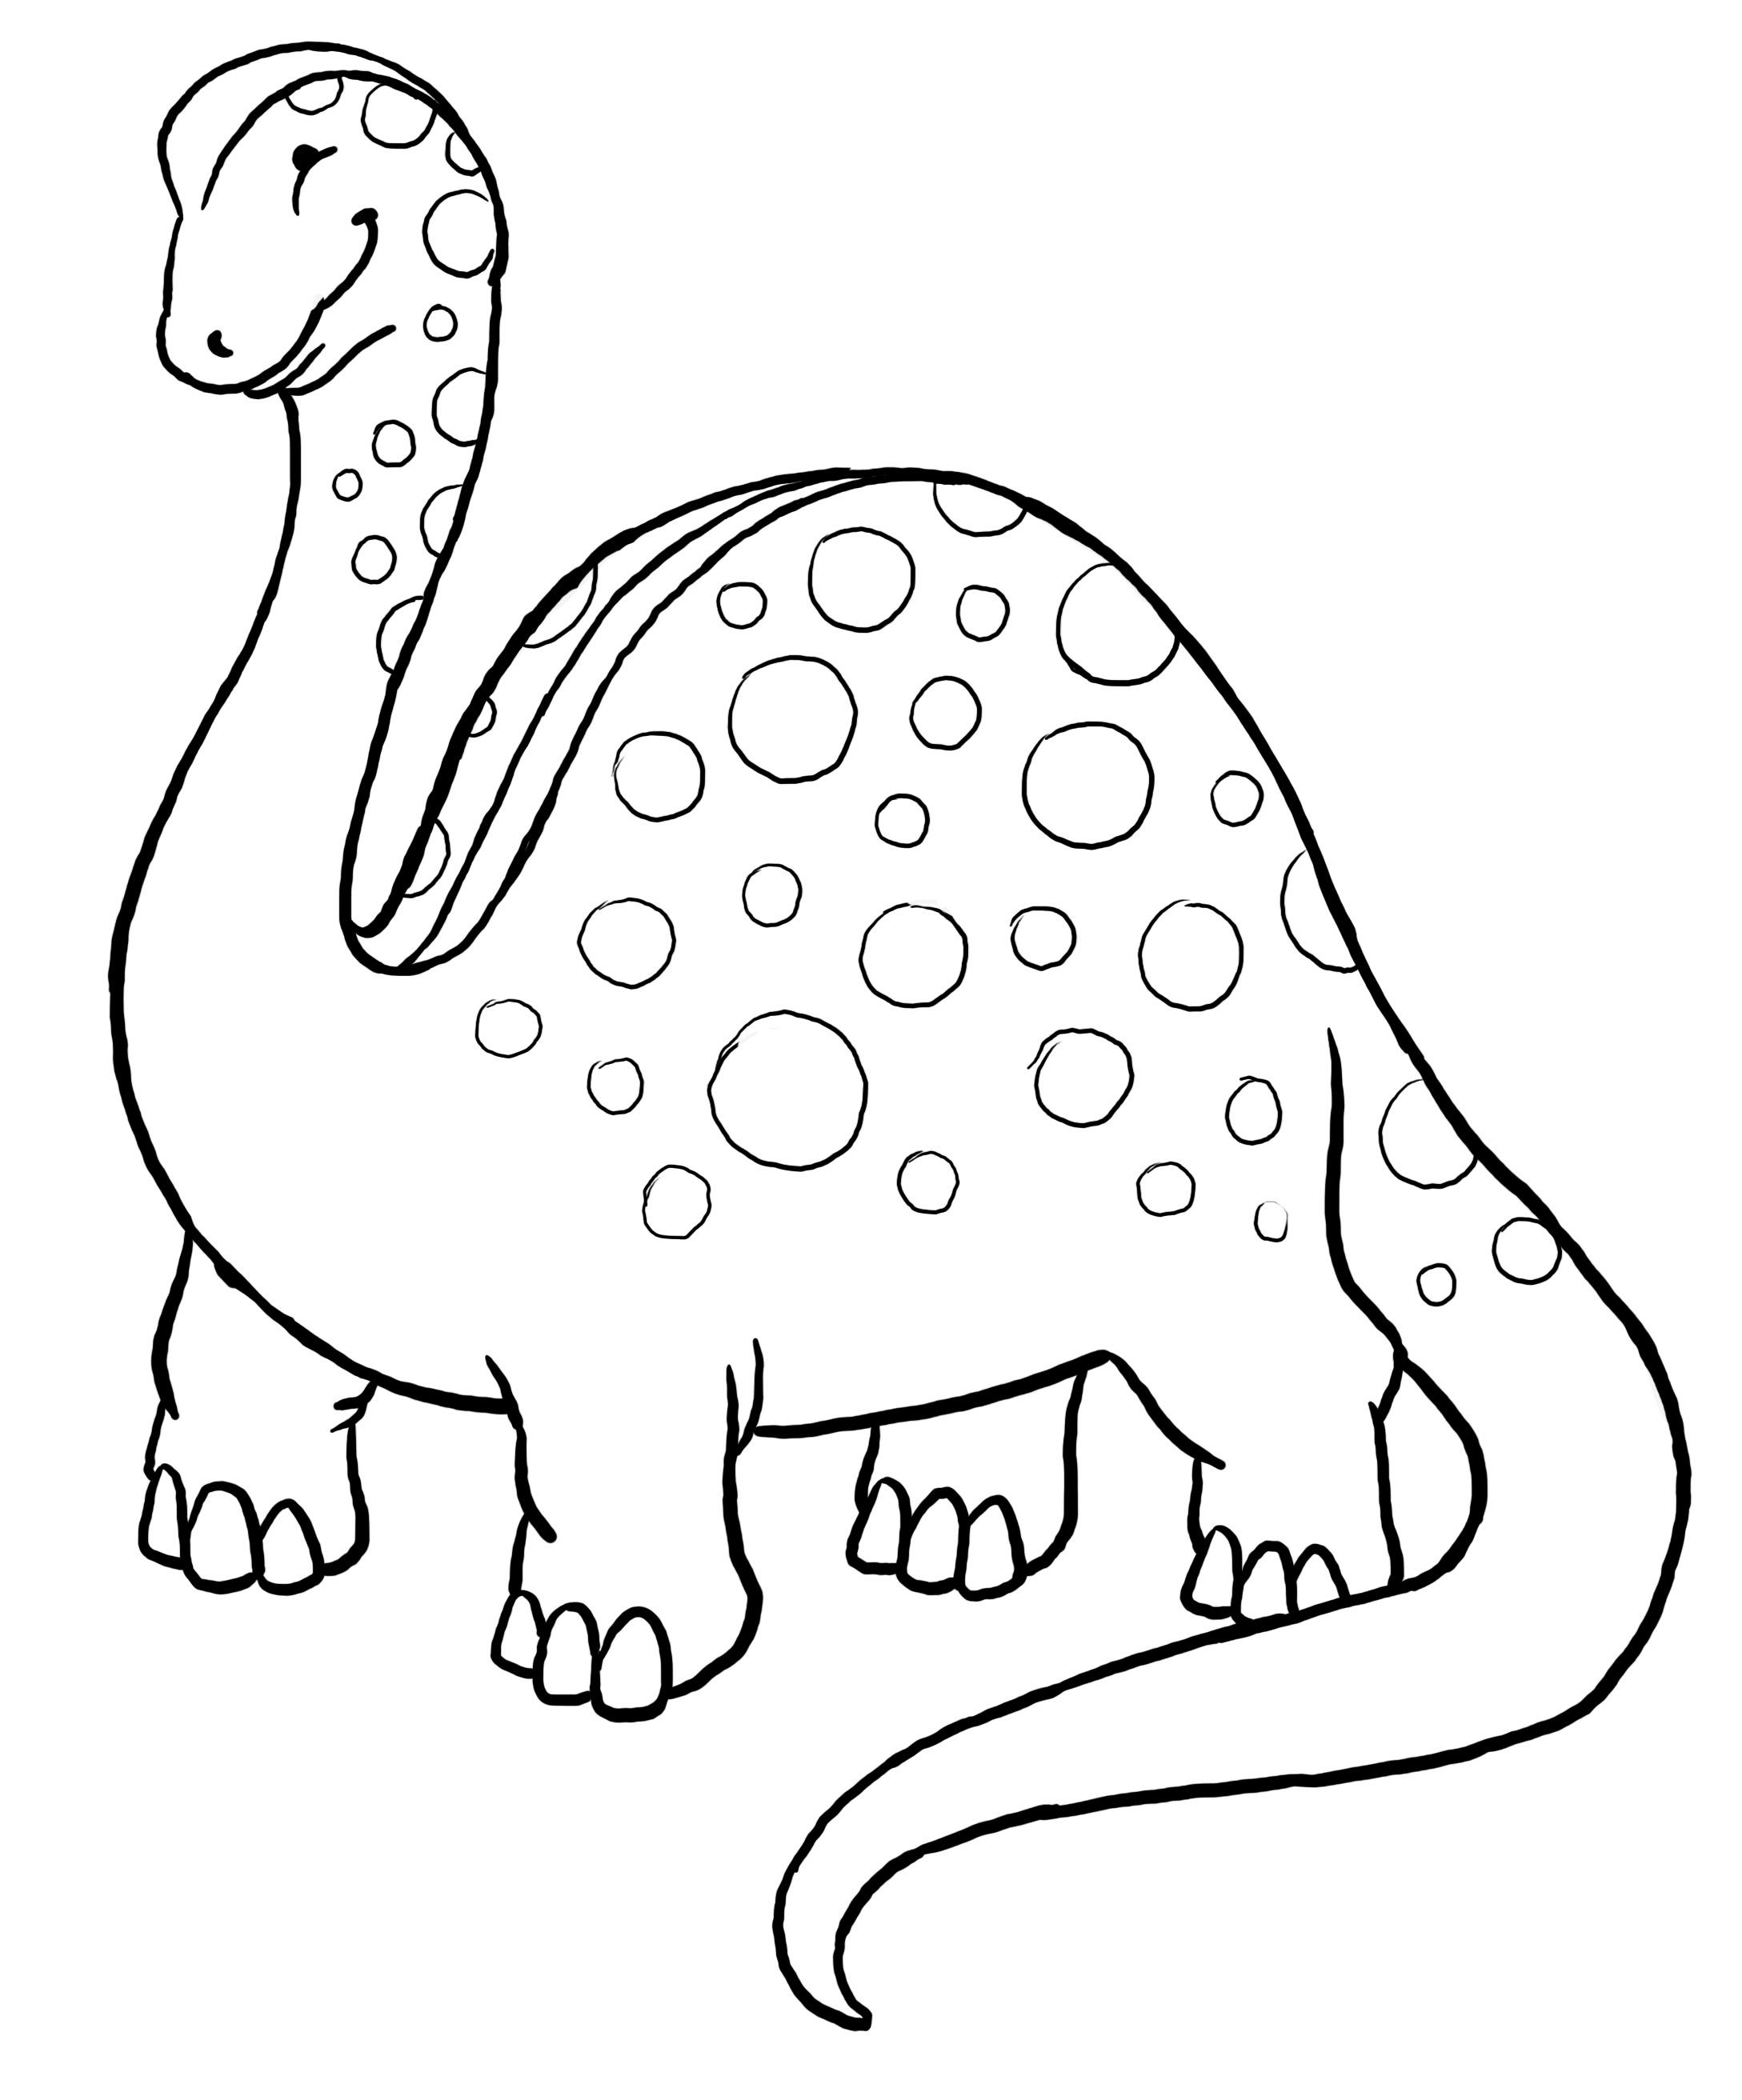 Dinosaur Coloring Page 4